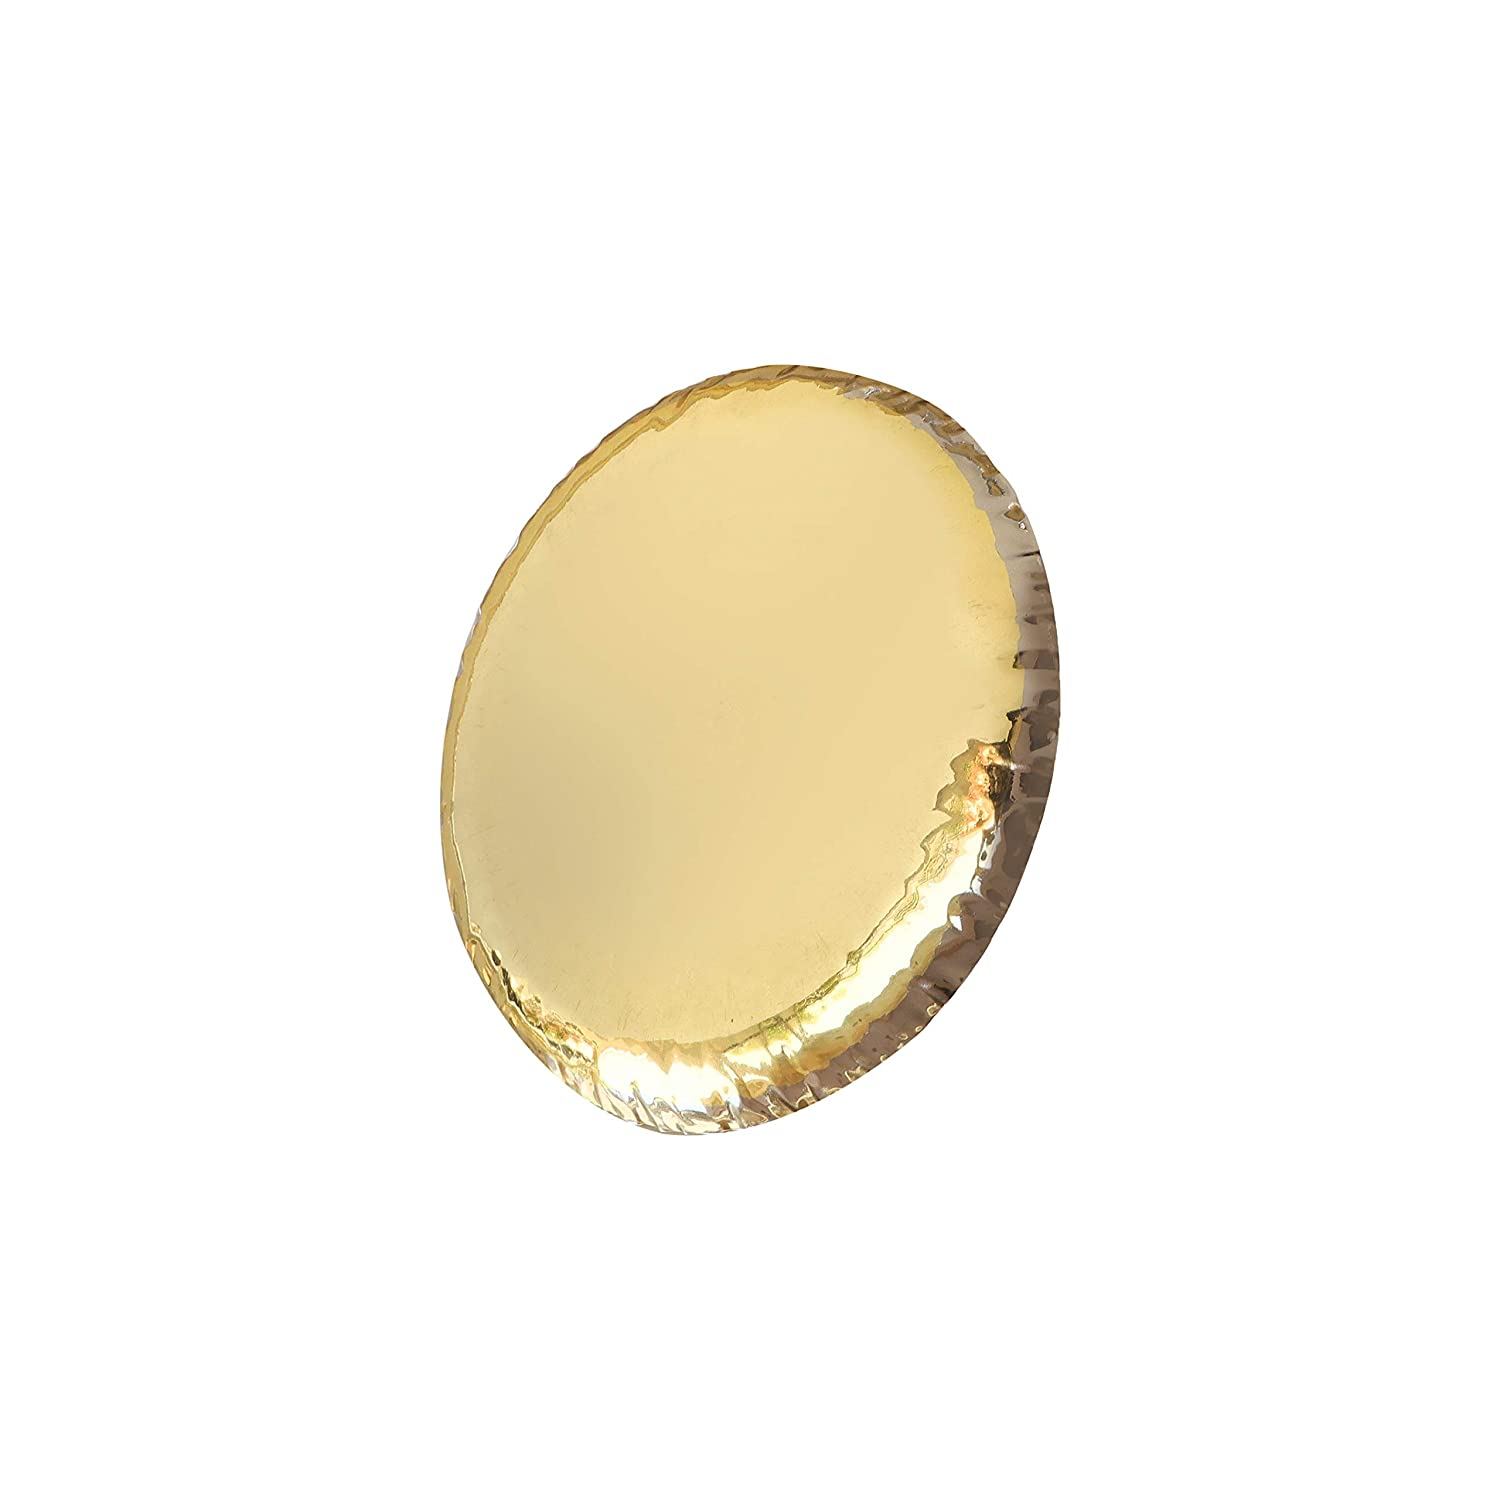 Inches De Kulture Hand Made Pure Brass Wrinkled Feather Light Plate 6.5 x 0.5 DH For Serving Home D/écor Tableware